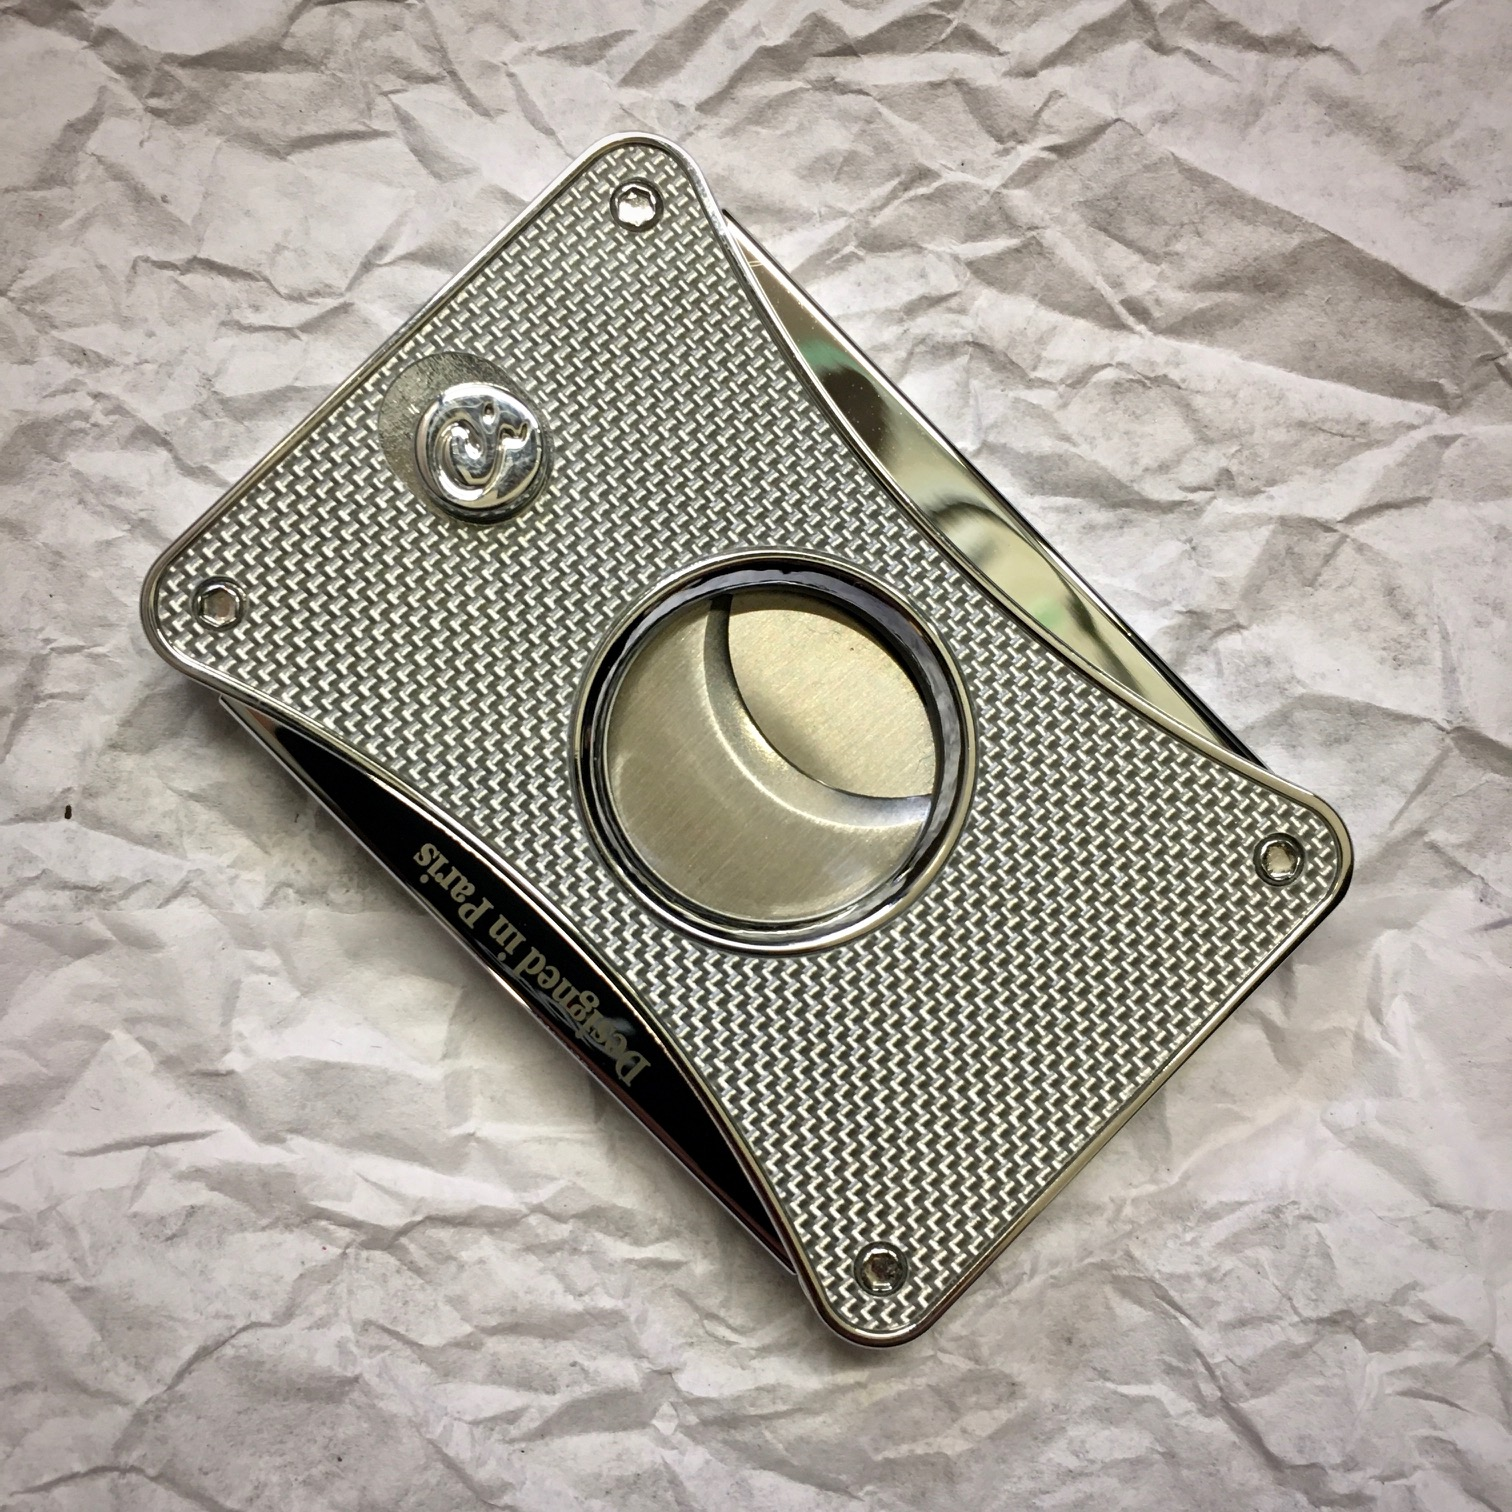 Caseti Cigar Cutter - Chrome Plated